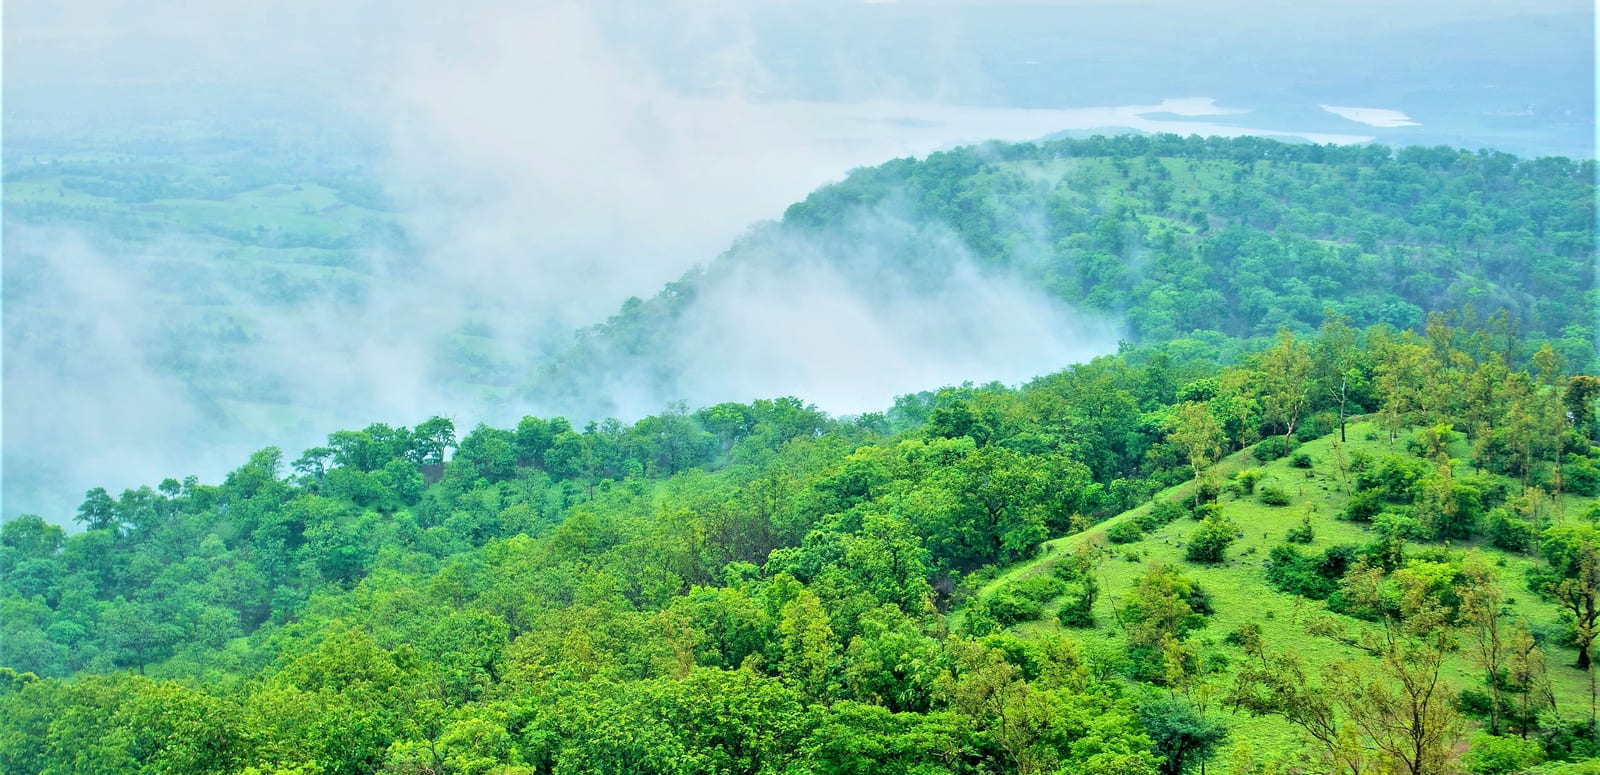 25 Best Tourist Places in Maharashtra in Winter - 2019 (Photos)